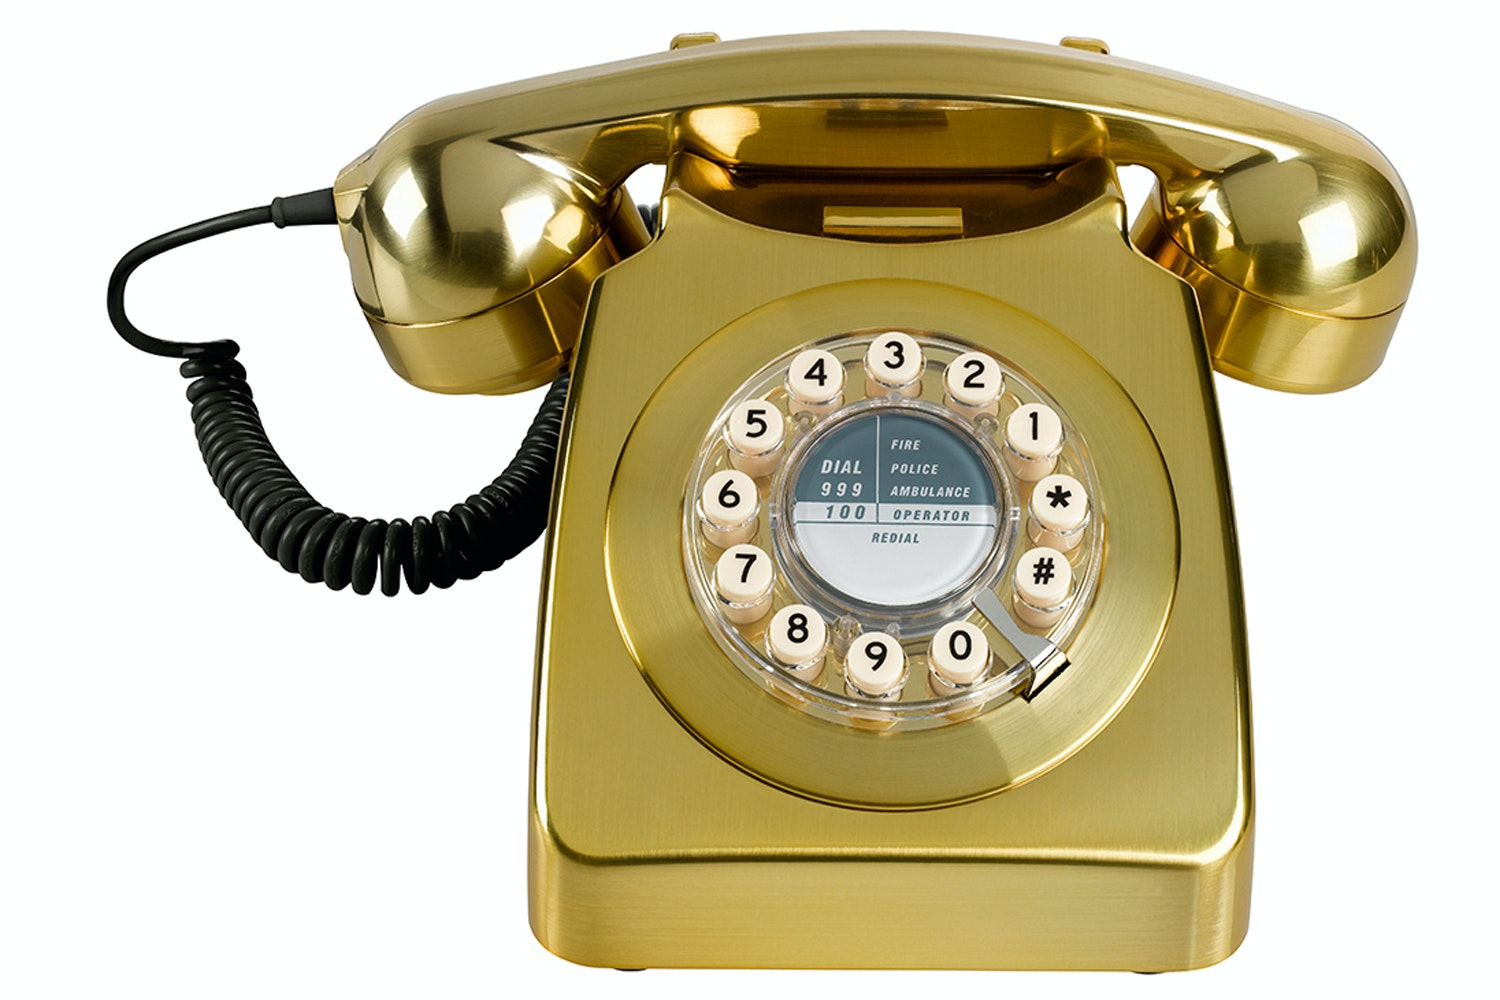 746 Phone Brushed Brass